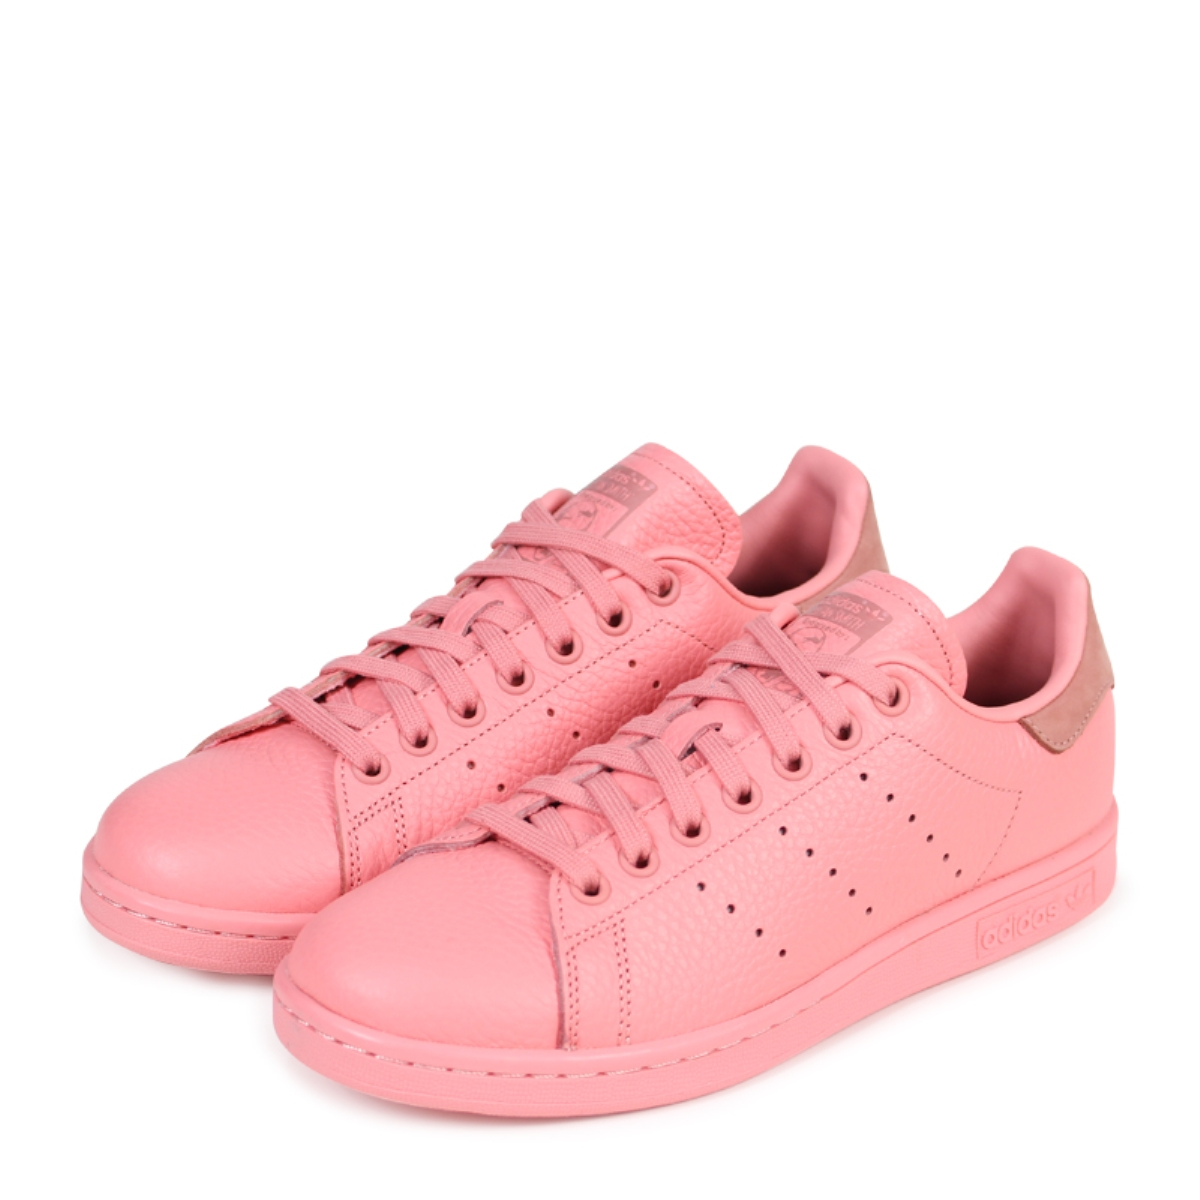 finest selection a6673 3596b adidas Originals STAN SMITH Adidas Stan Smith Lady's men sneakers BZ0469  pink originals [2/8 Shinnyu load] [182]